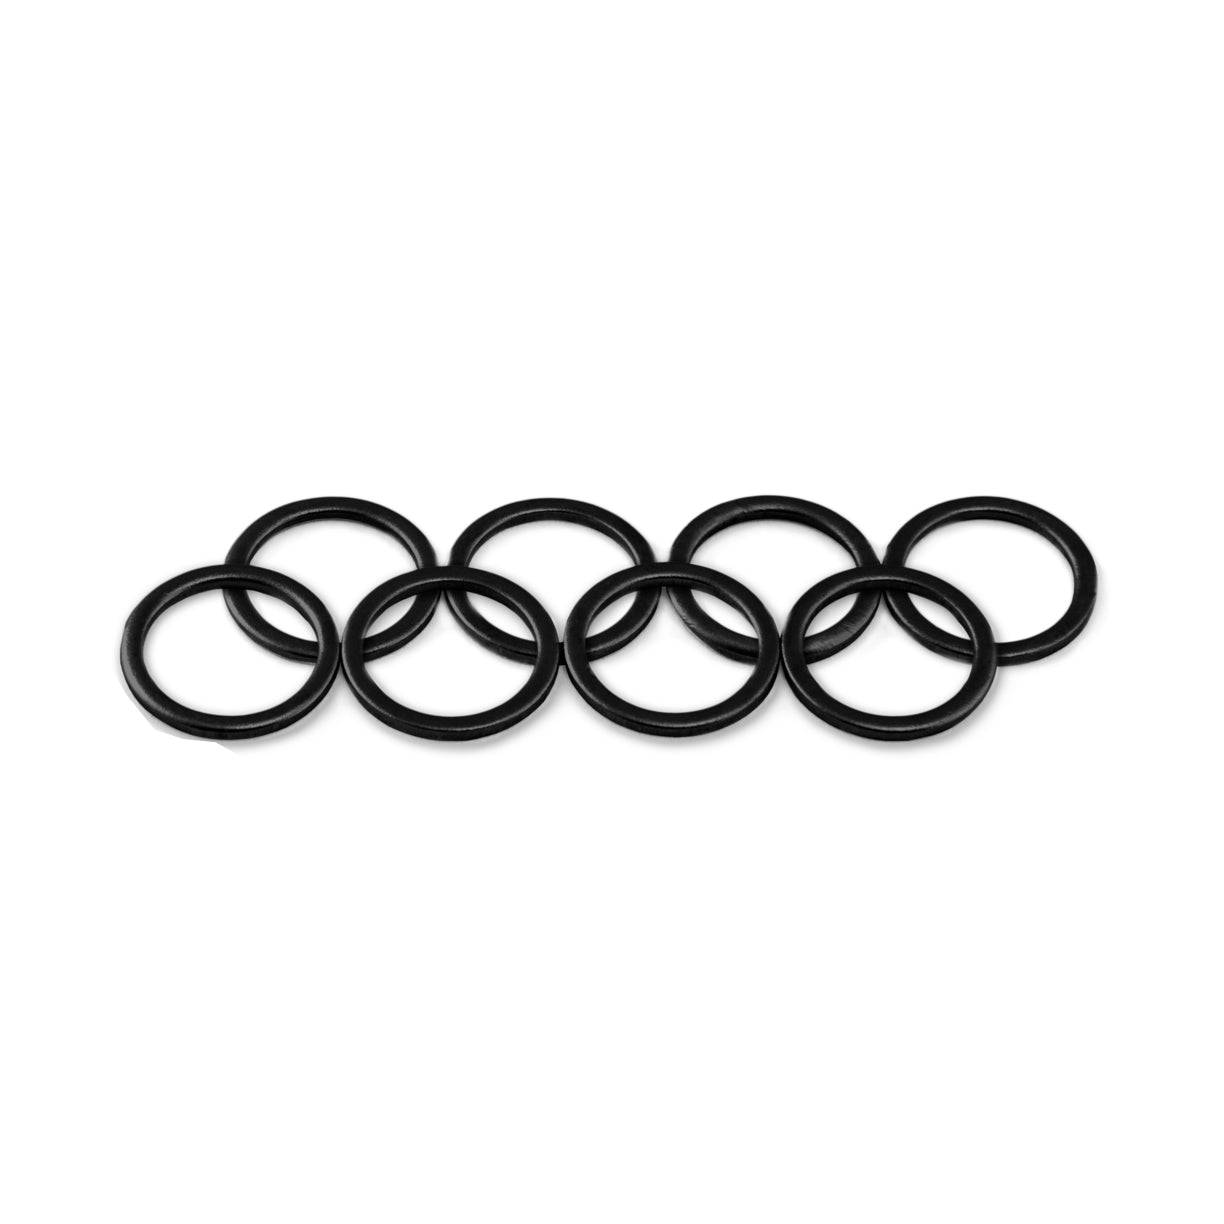 Truck Axle Washers (Set of 8)